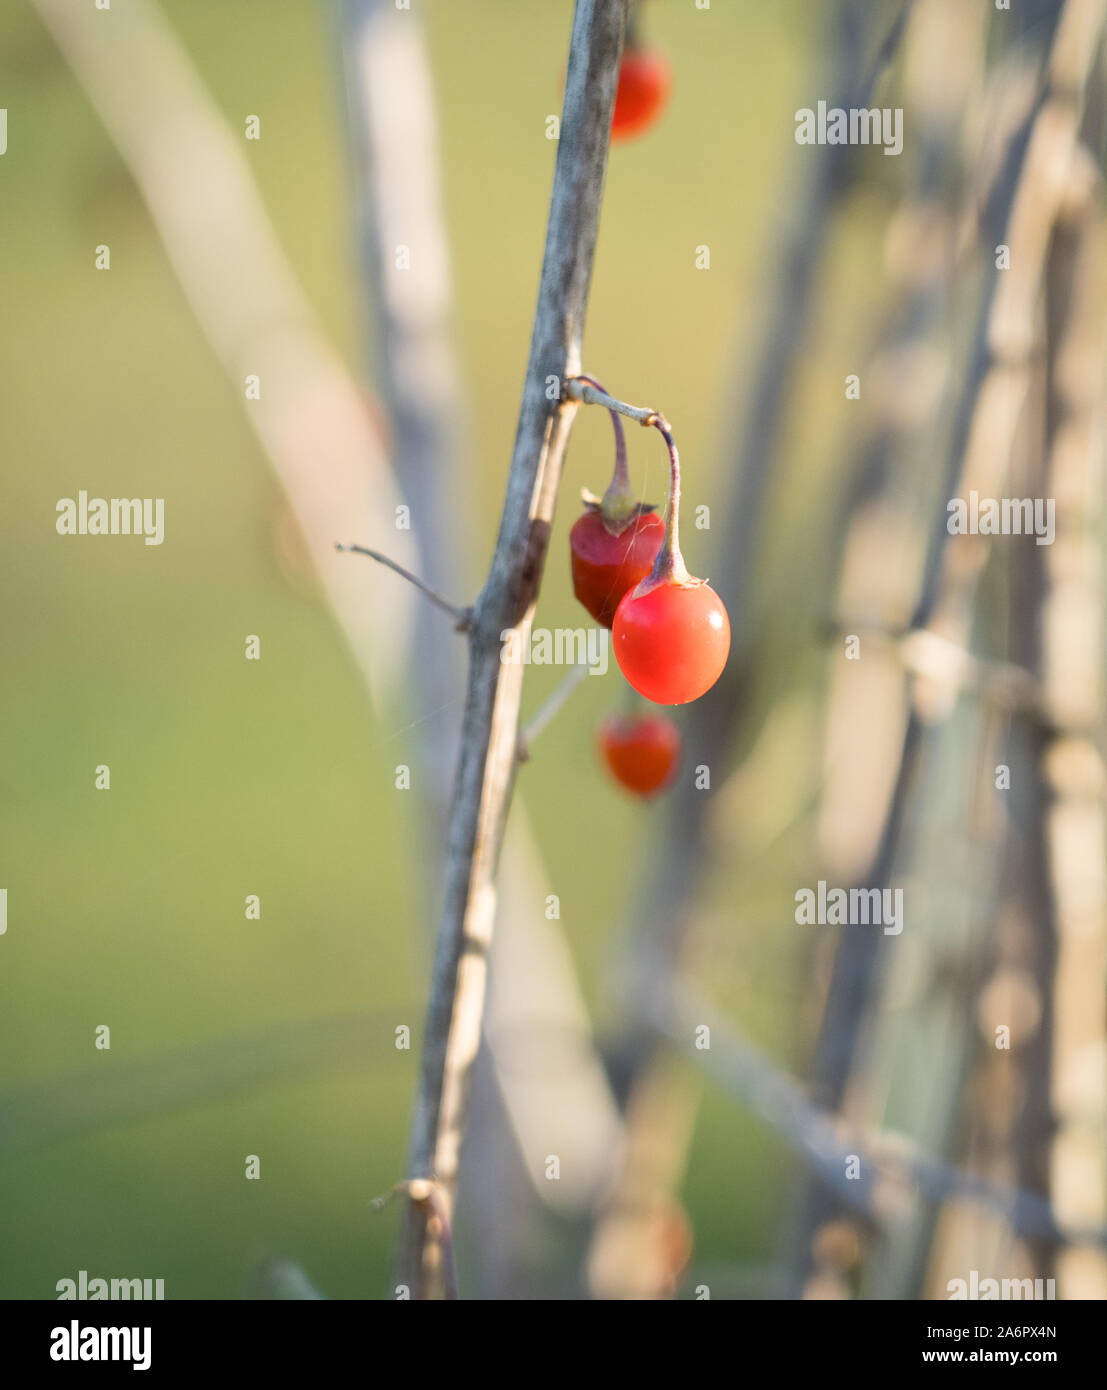 Goji Berry Garden High Resolution Stock Photography And Images Alamy